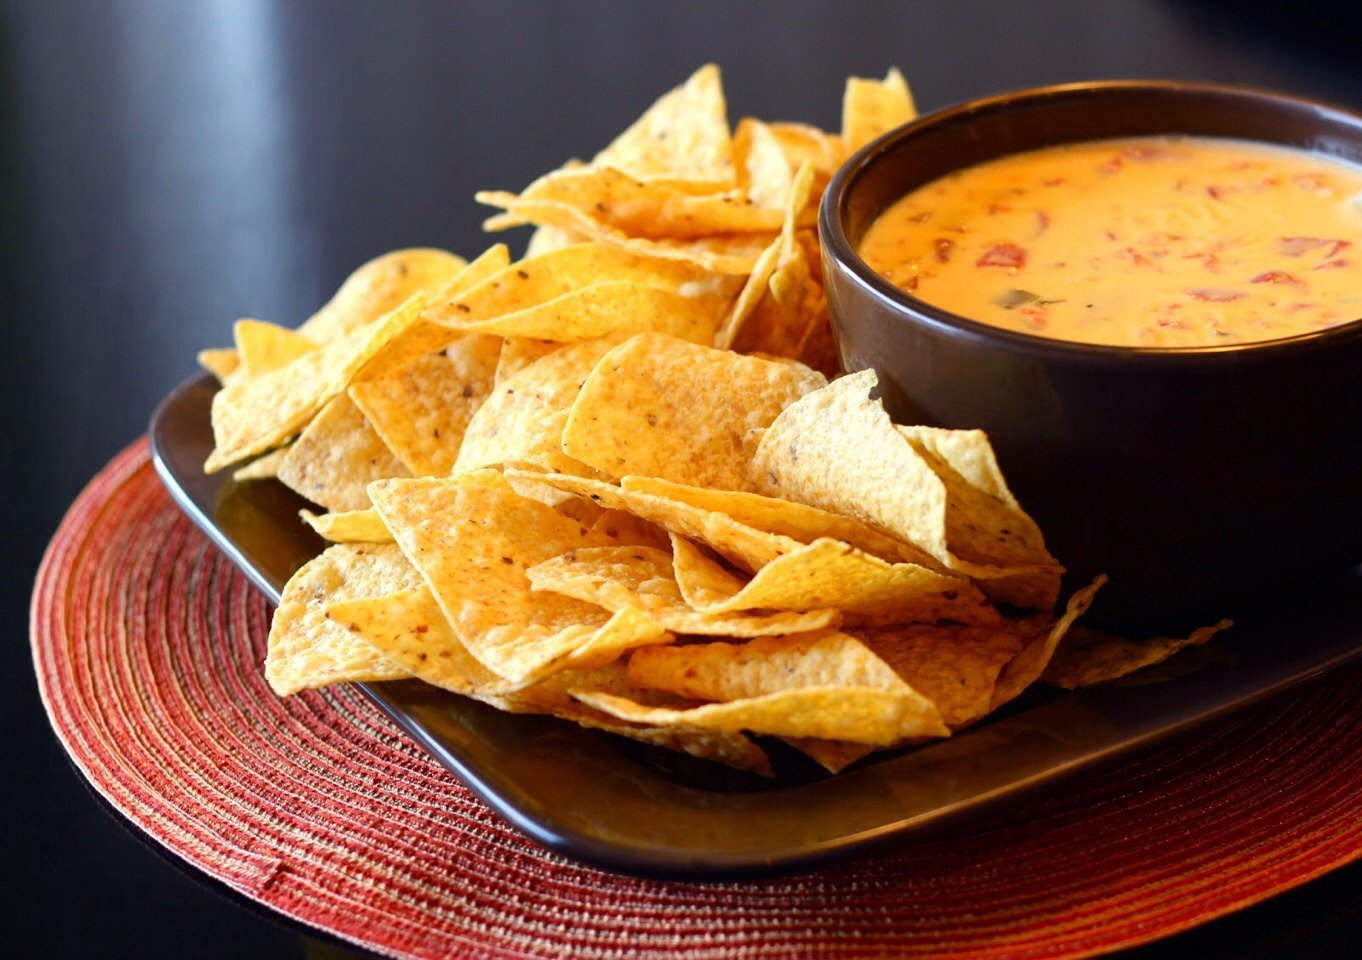 Nachos and cheese pictures Vegan Nachos with Queso Minimalist Baker Recipes